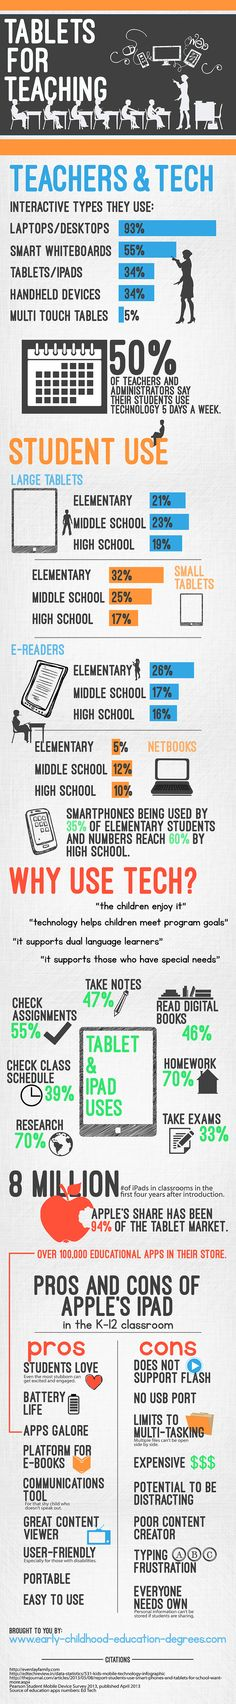 Tablets for Teaching Kids Infographic - http://elearninginfographics.com/tablets-teaching-kids-infographic/